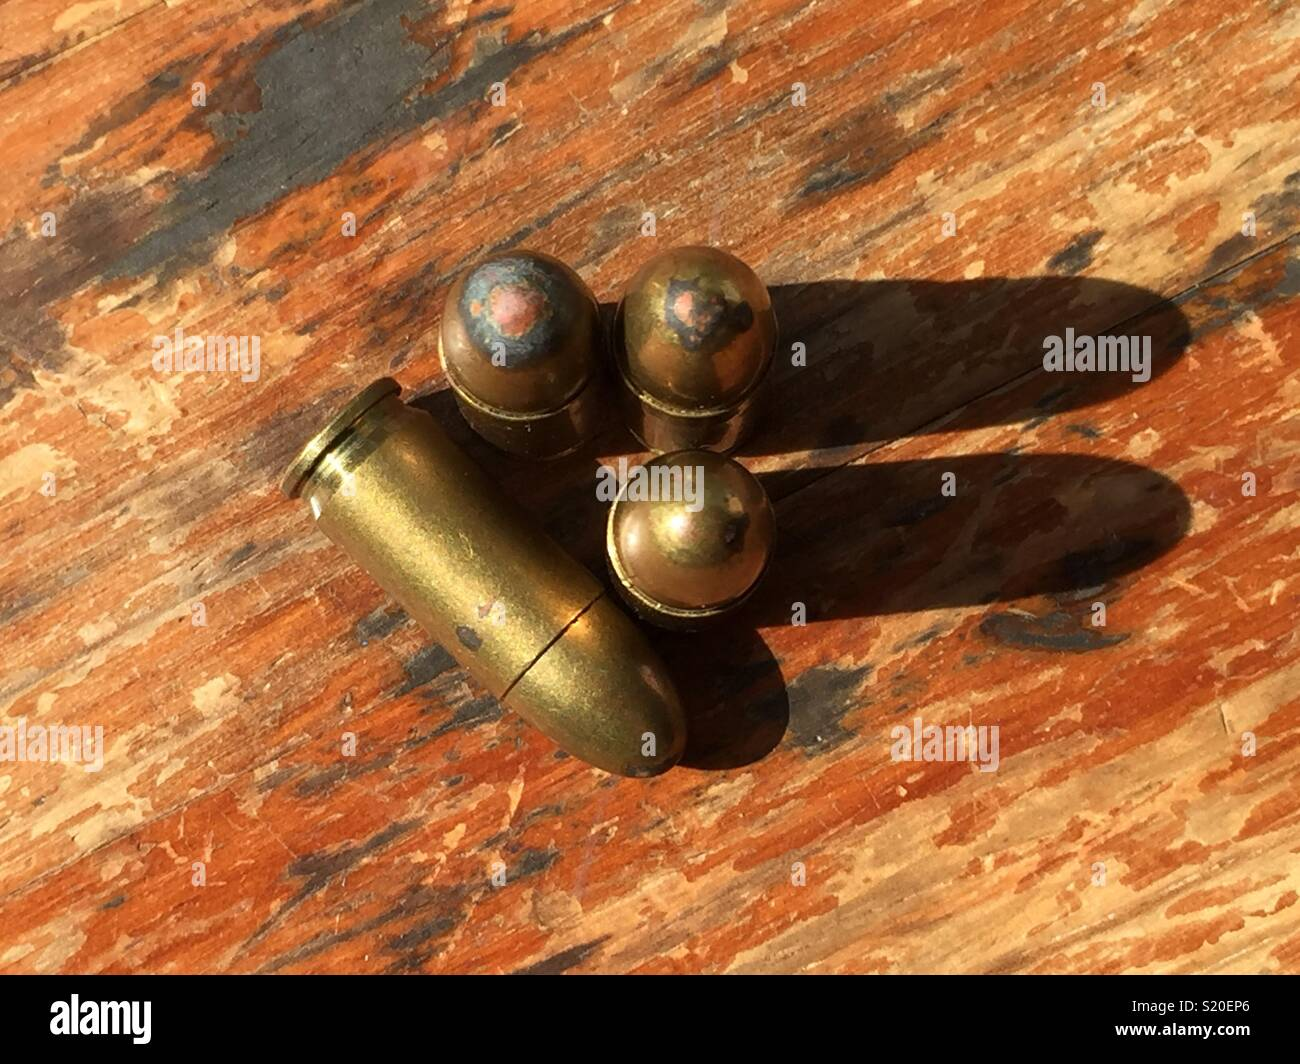 Some bullets - Stock Image